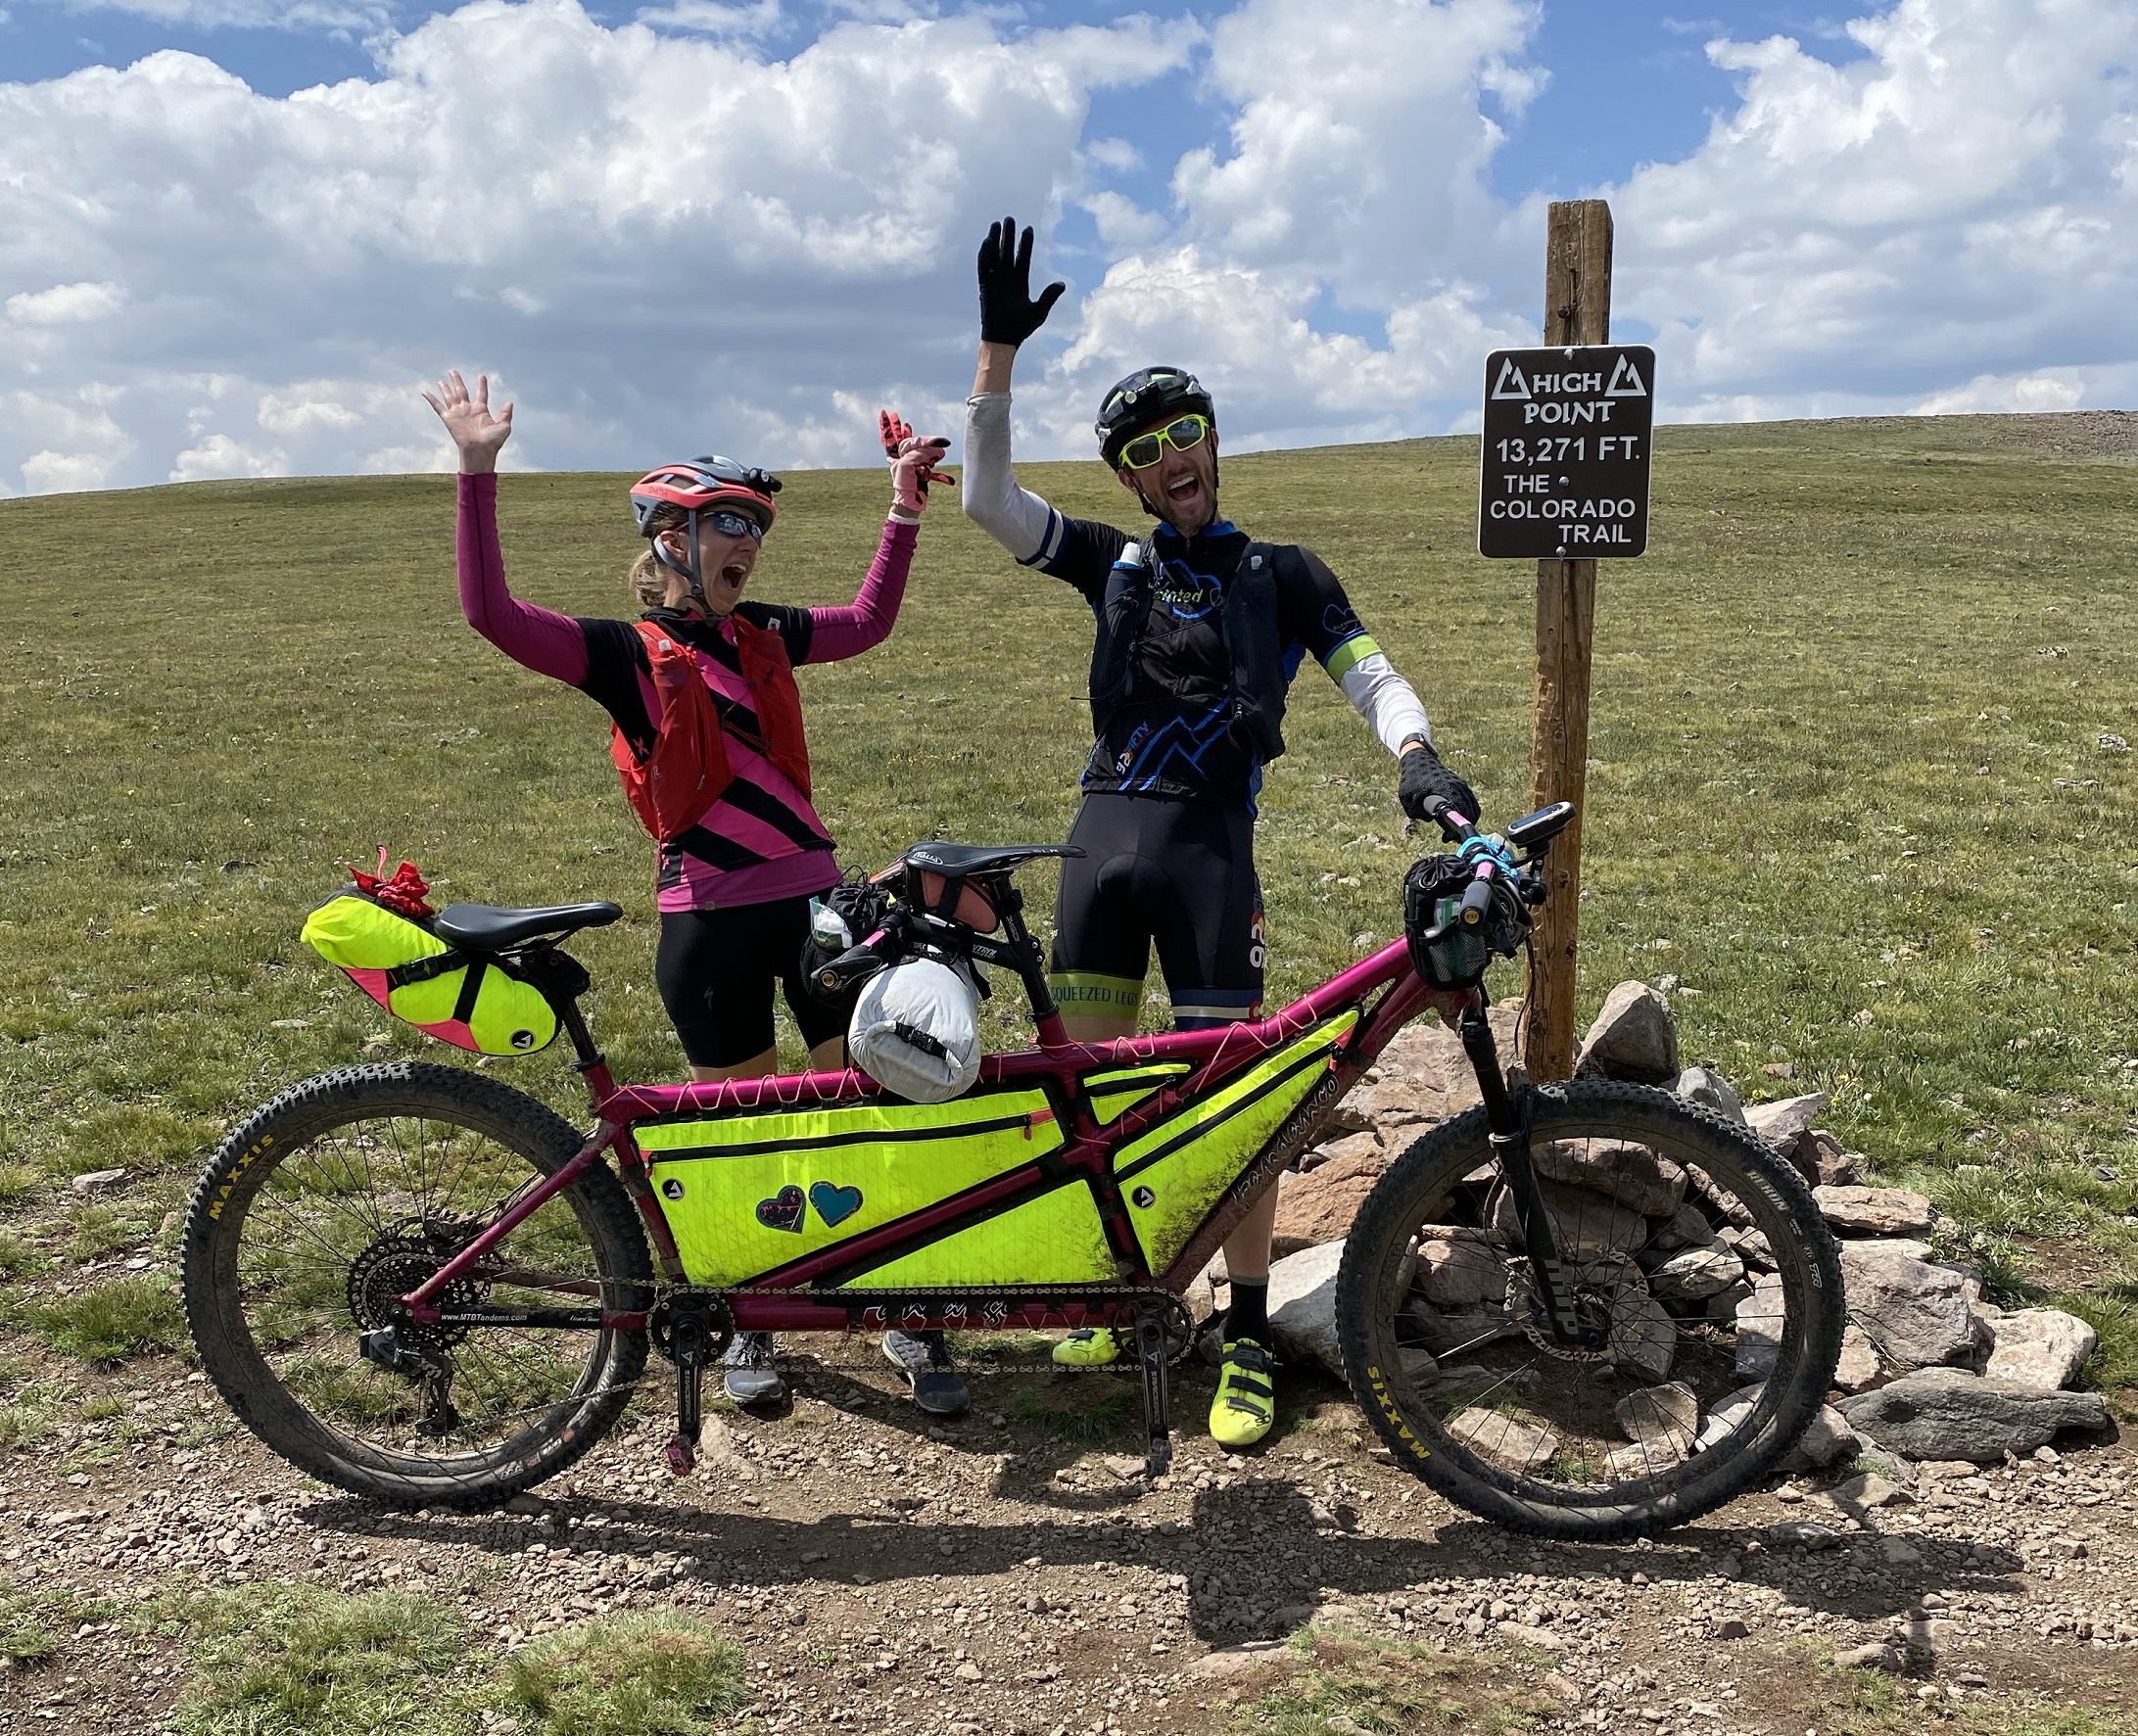 The Pleskos with their Tandem MTB on the Colorado Trail